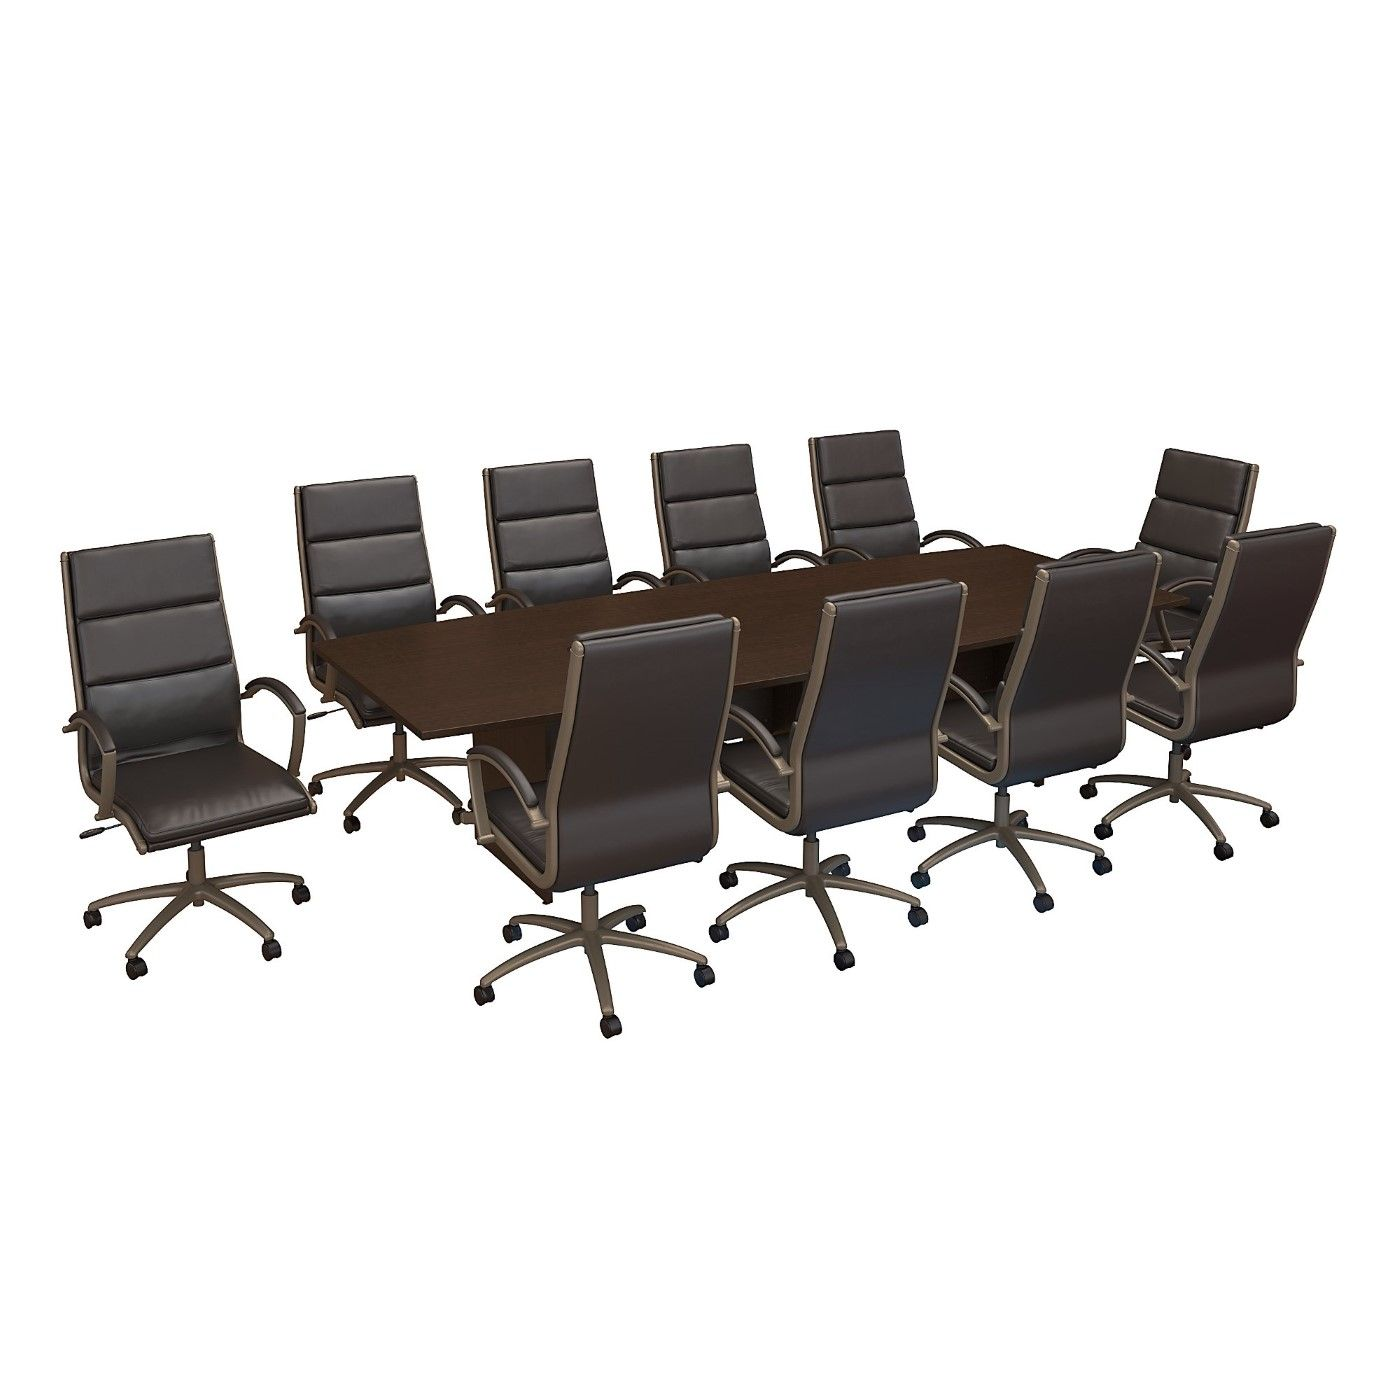 BUSH BUSINESS FURNITURE 120W X 48D BOAT SHAPED CONFERENCE TABLE WITH WOOD BASE AND SET OF 10 HIGH BACK OFFICE CHAIRS. FREE SHIPPING